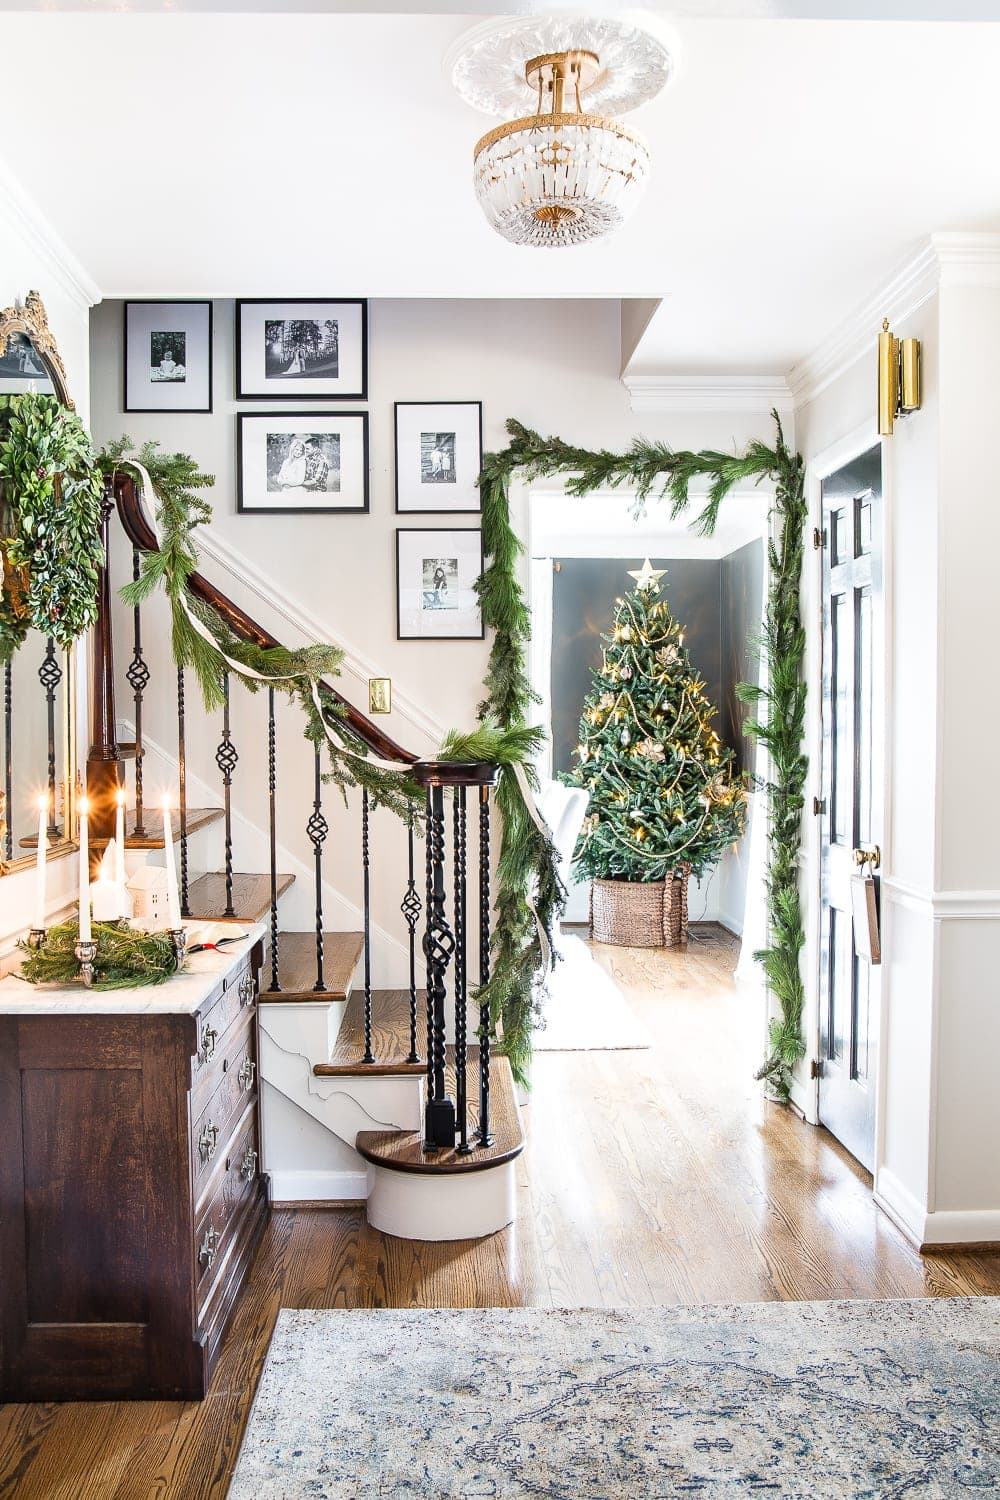 Classic Christmas Foyer | blesserhouse.com - A classic traditional entryway / foyer decorated for Christmas using fresh pine and holly greenery and a St. Lucia Day Advent wreath. #christmasfoyer #classicdecor #traditionalchristmas